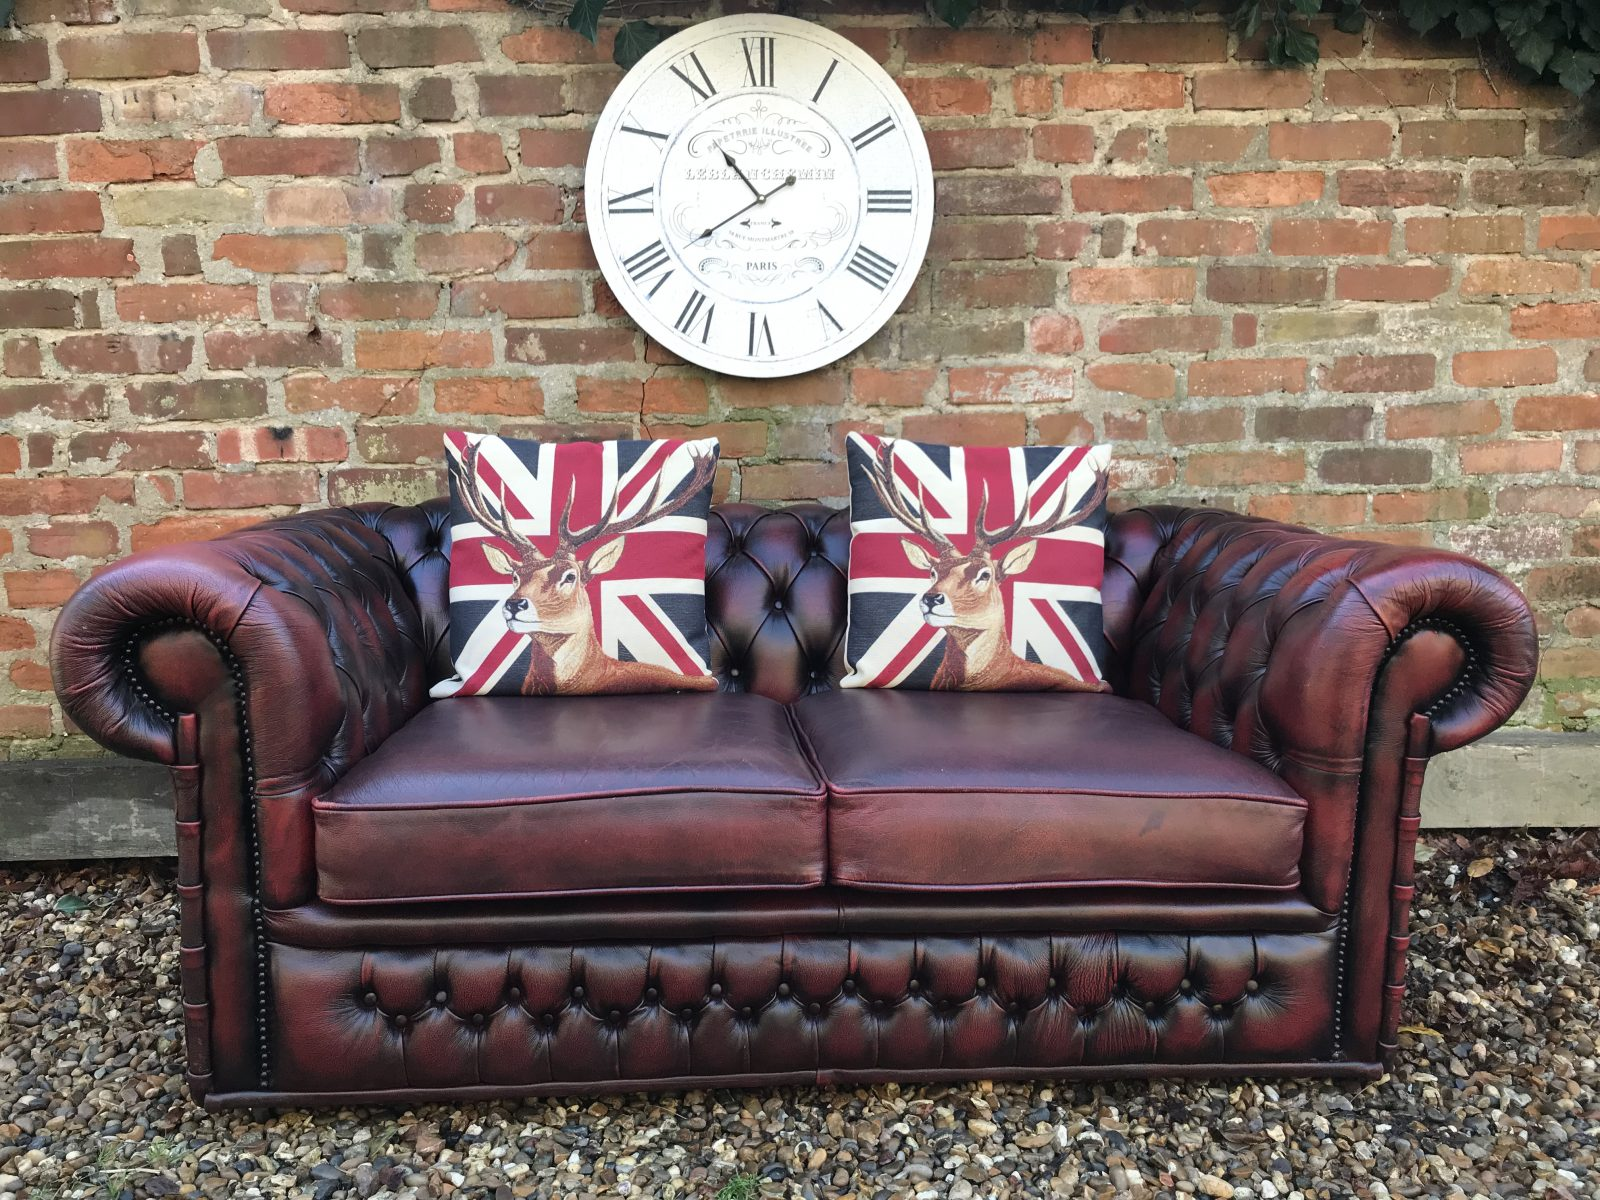 Oxblood Red 2 Seater Chesterfield Sofa.